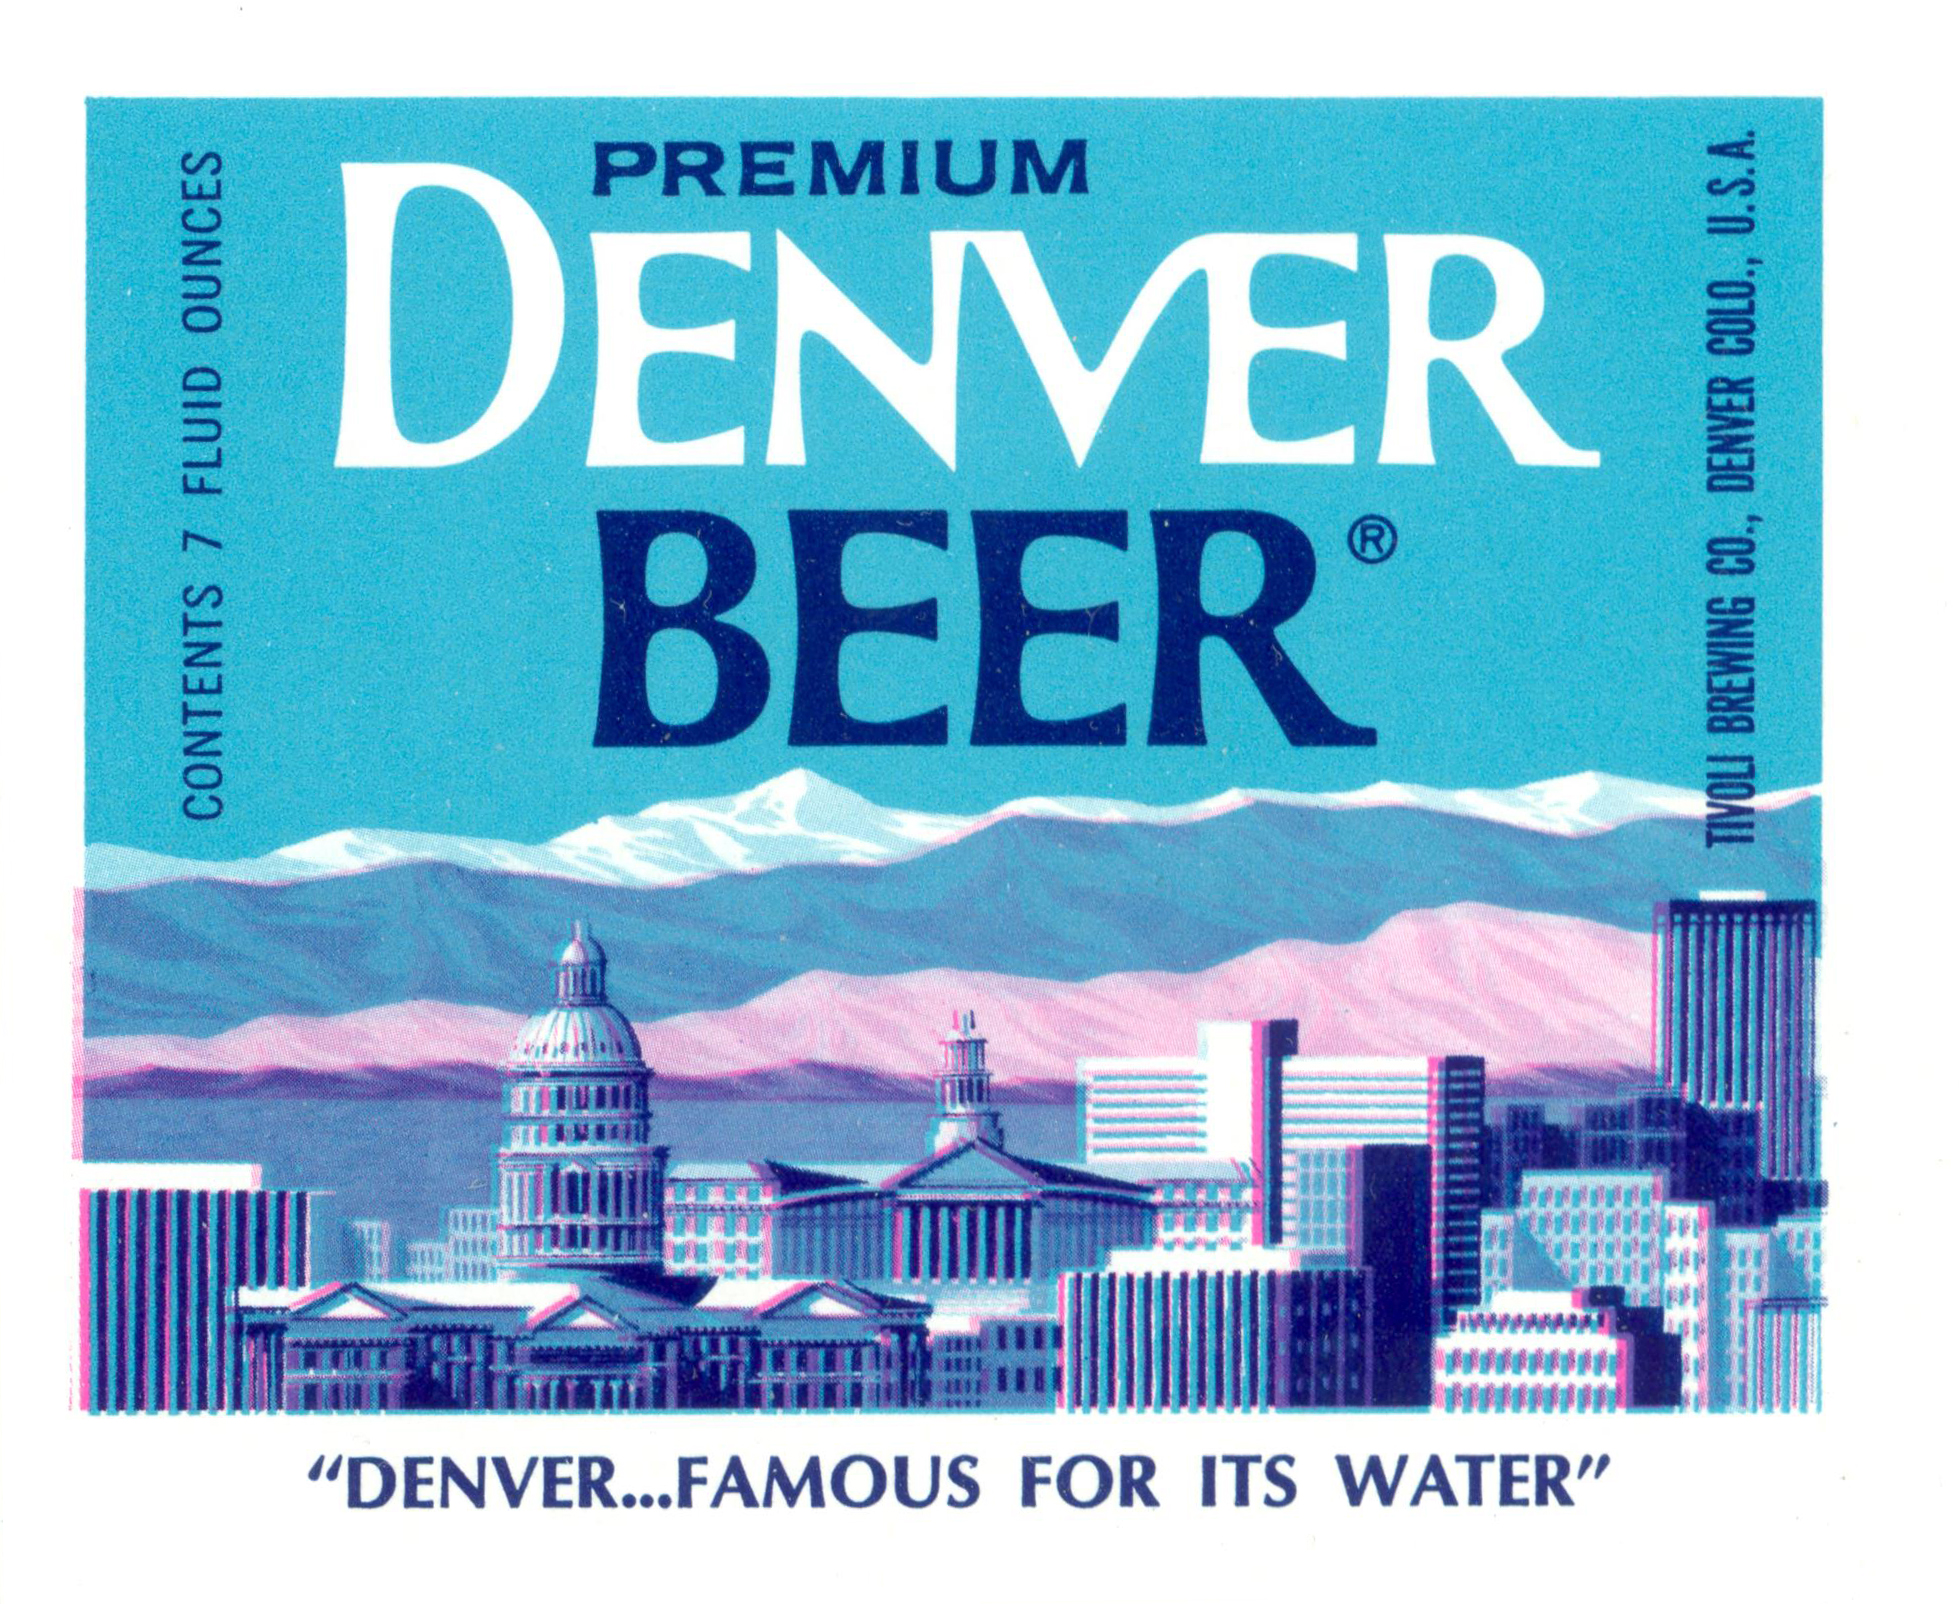 Tivoli Golden Tower Beer 1960s Bottle Labels From Denver 39s Tivoli Brewing Company